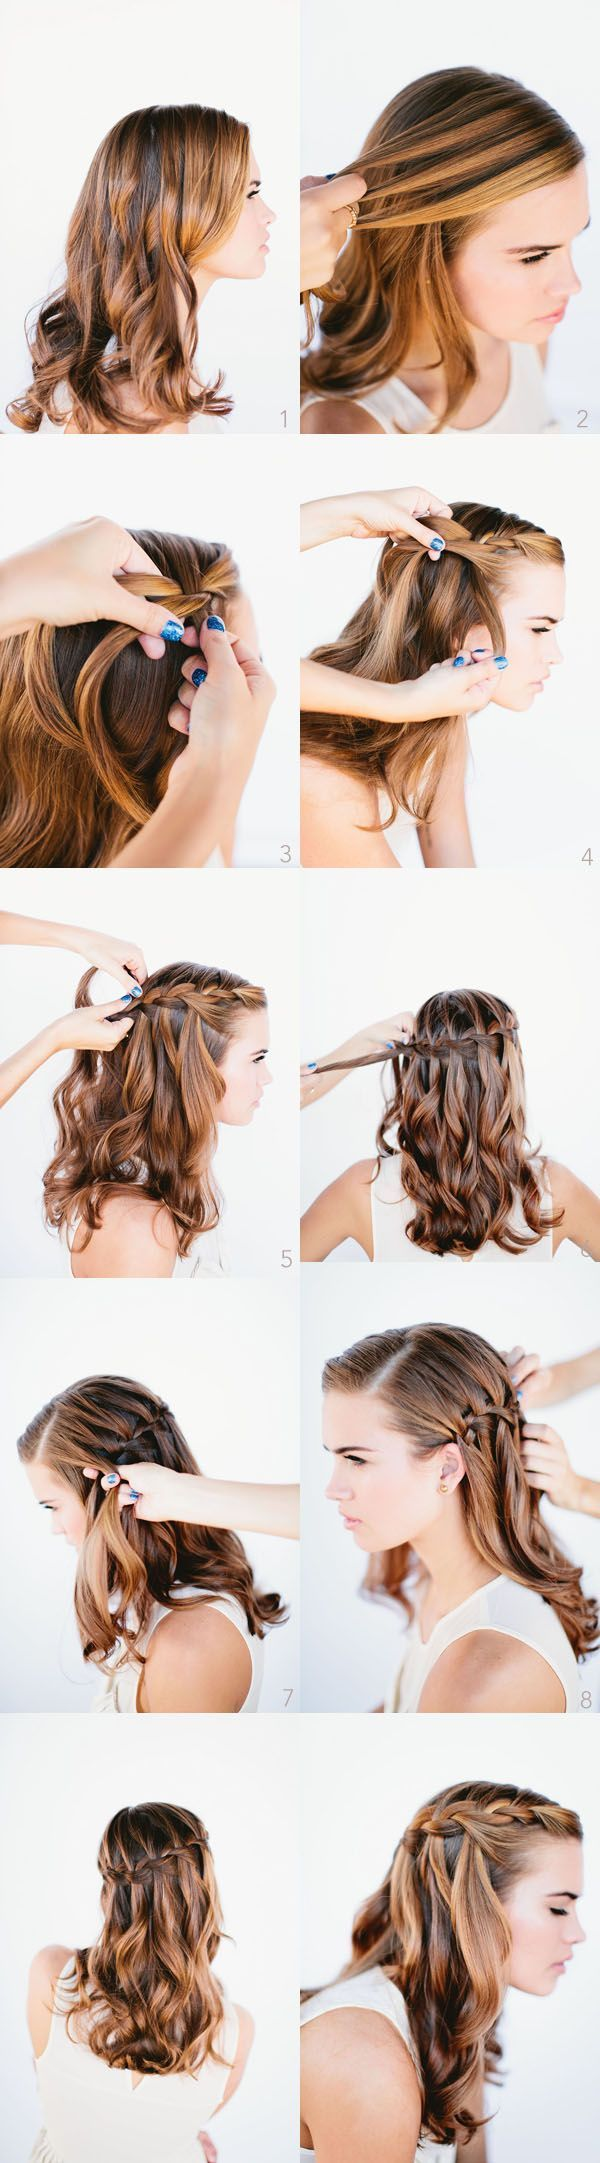 waterfall-braid-wedding-hairstyles-for-long-hair